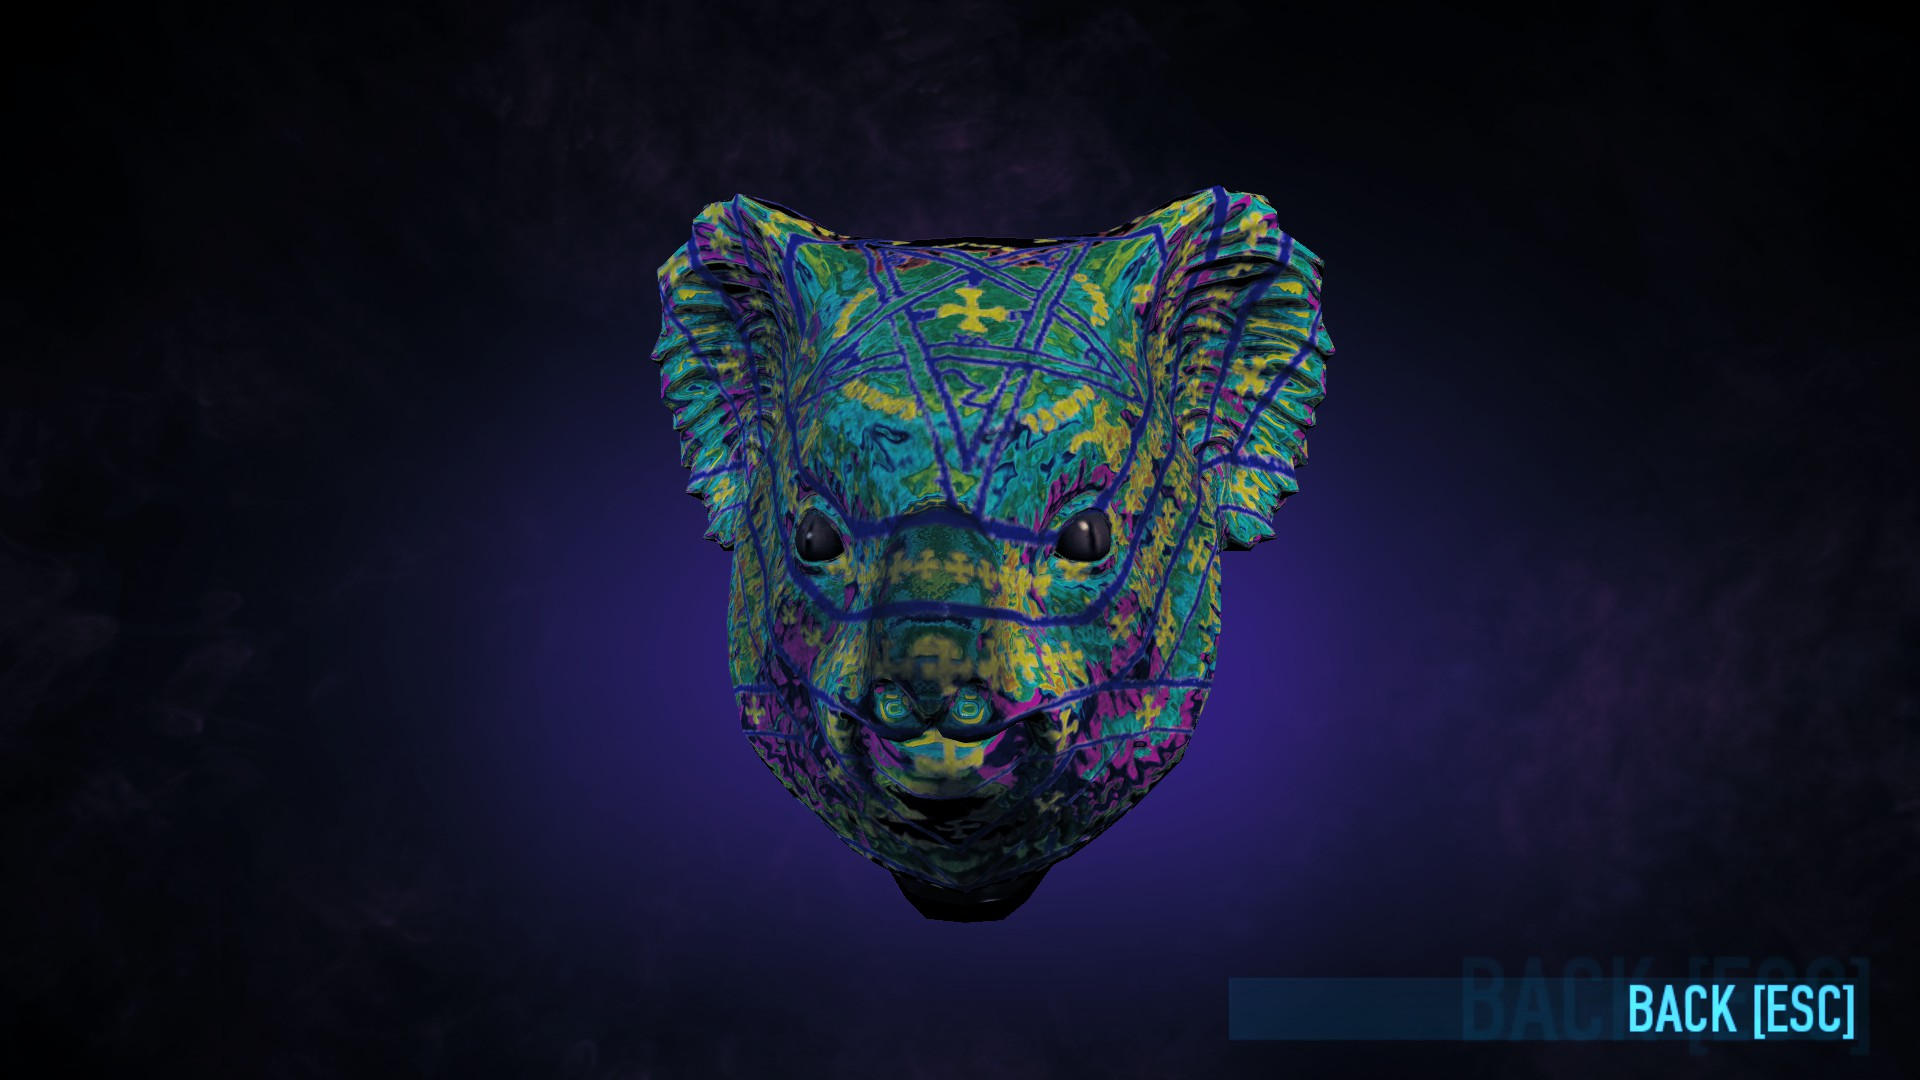 Show me your favorite CUSTOMIZED mask and tell how it is customized.